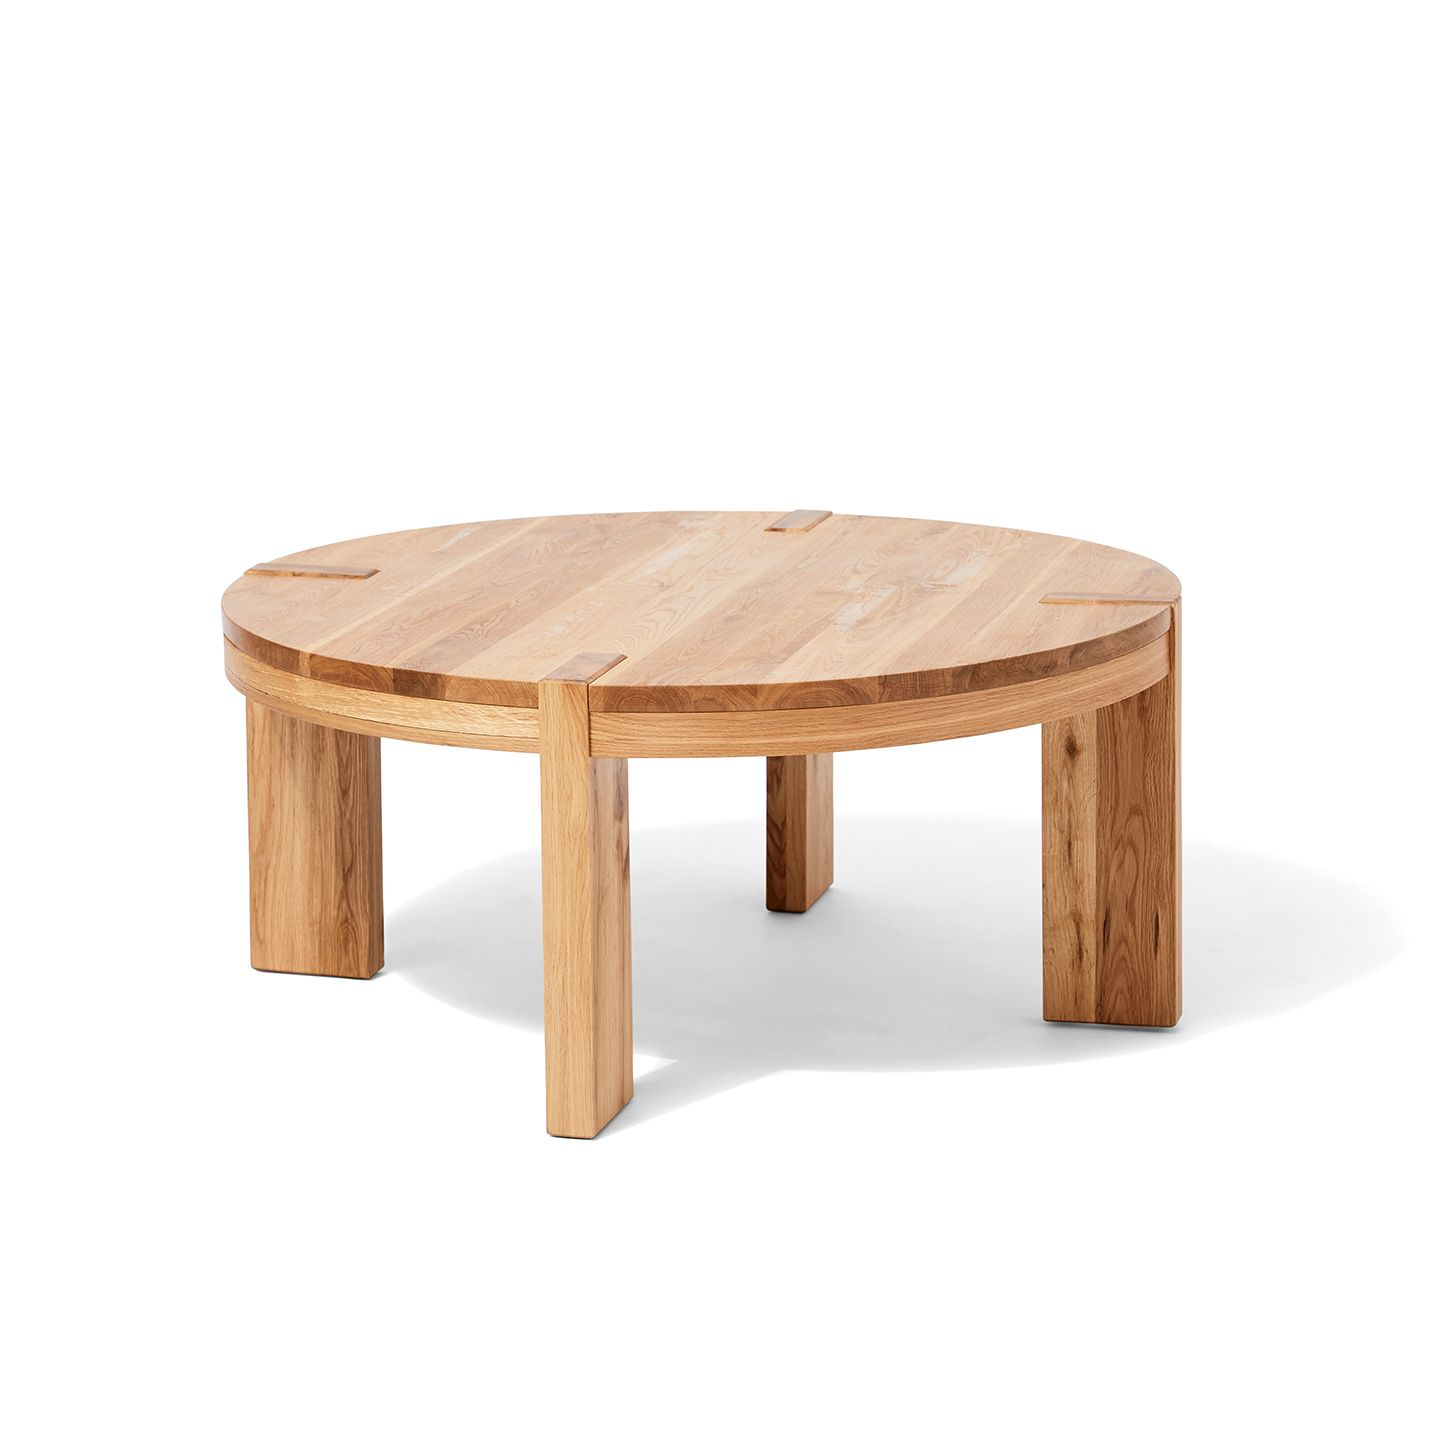 boerum round coffee table - occasional tables - tables - products, Esstisch ideennn